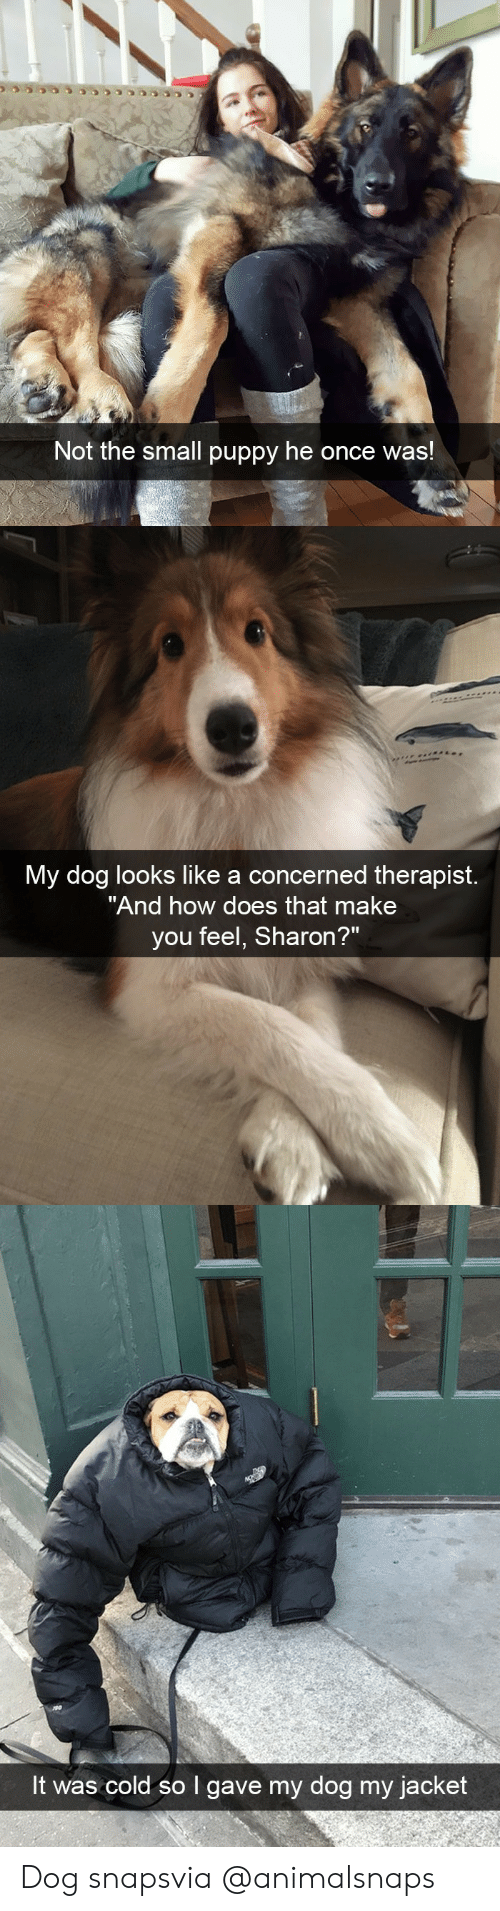 "How Does That Make You Feel: Not the small puppy he once was!   My dog looks like a concerned therapist.  ""And how does that make  you feel, Sharon?   It was cold so I gave my dog my jacket Dog snapsvia @animalsnaps"